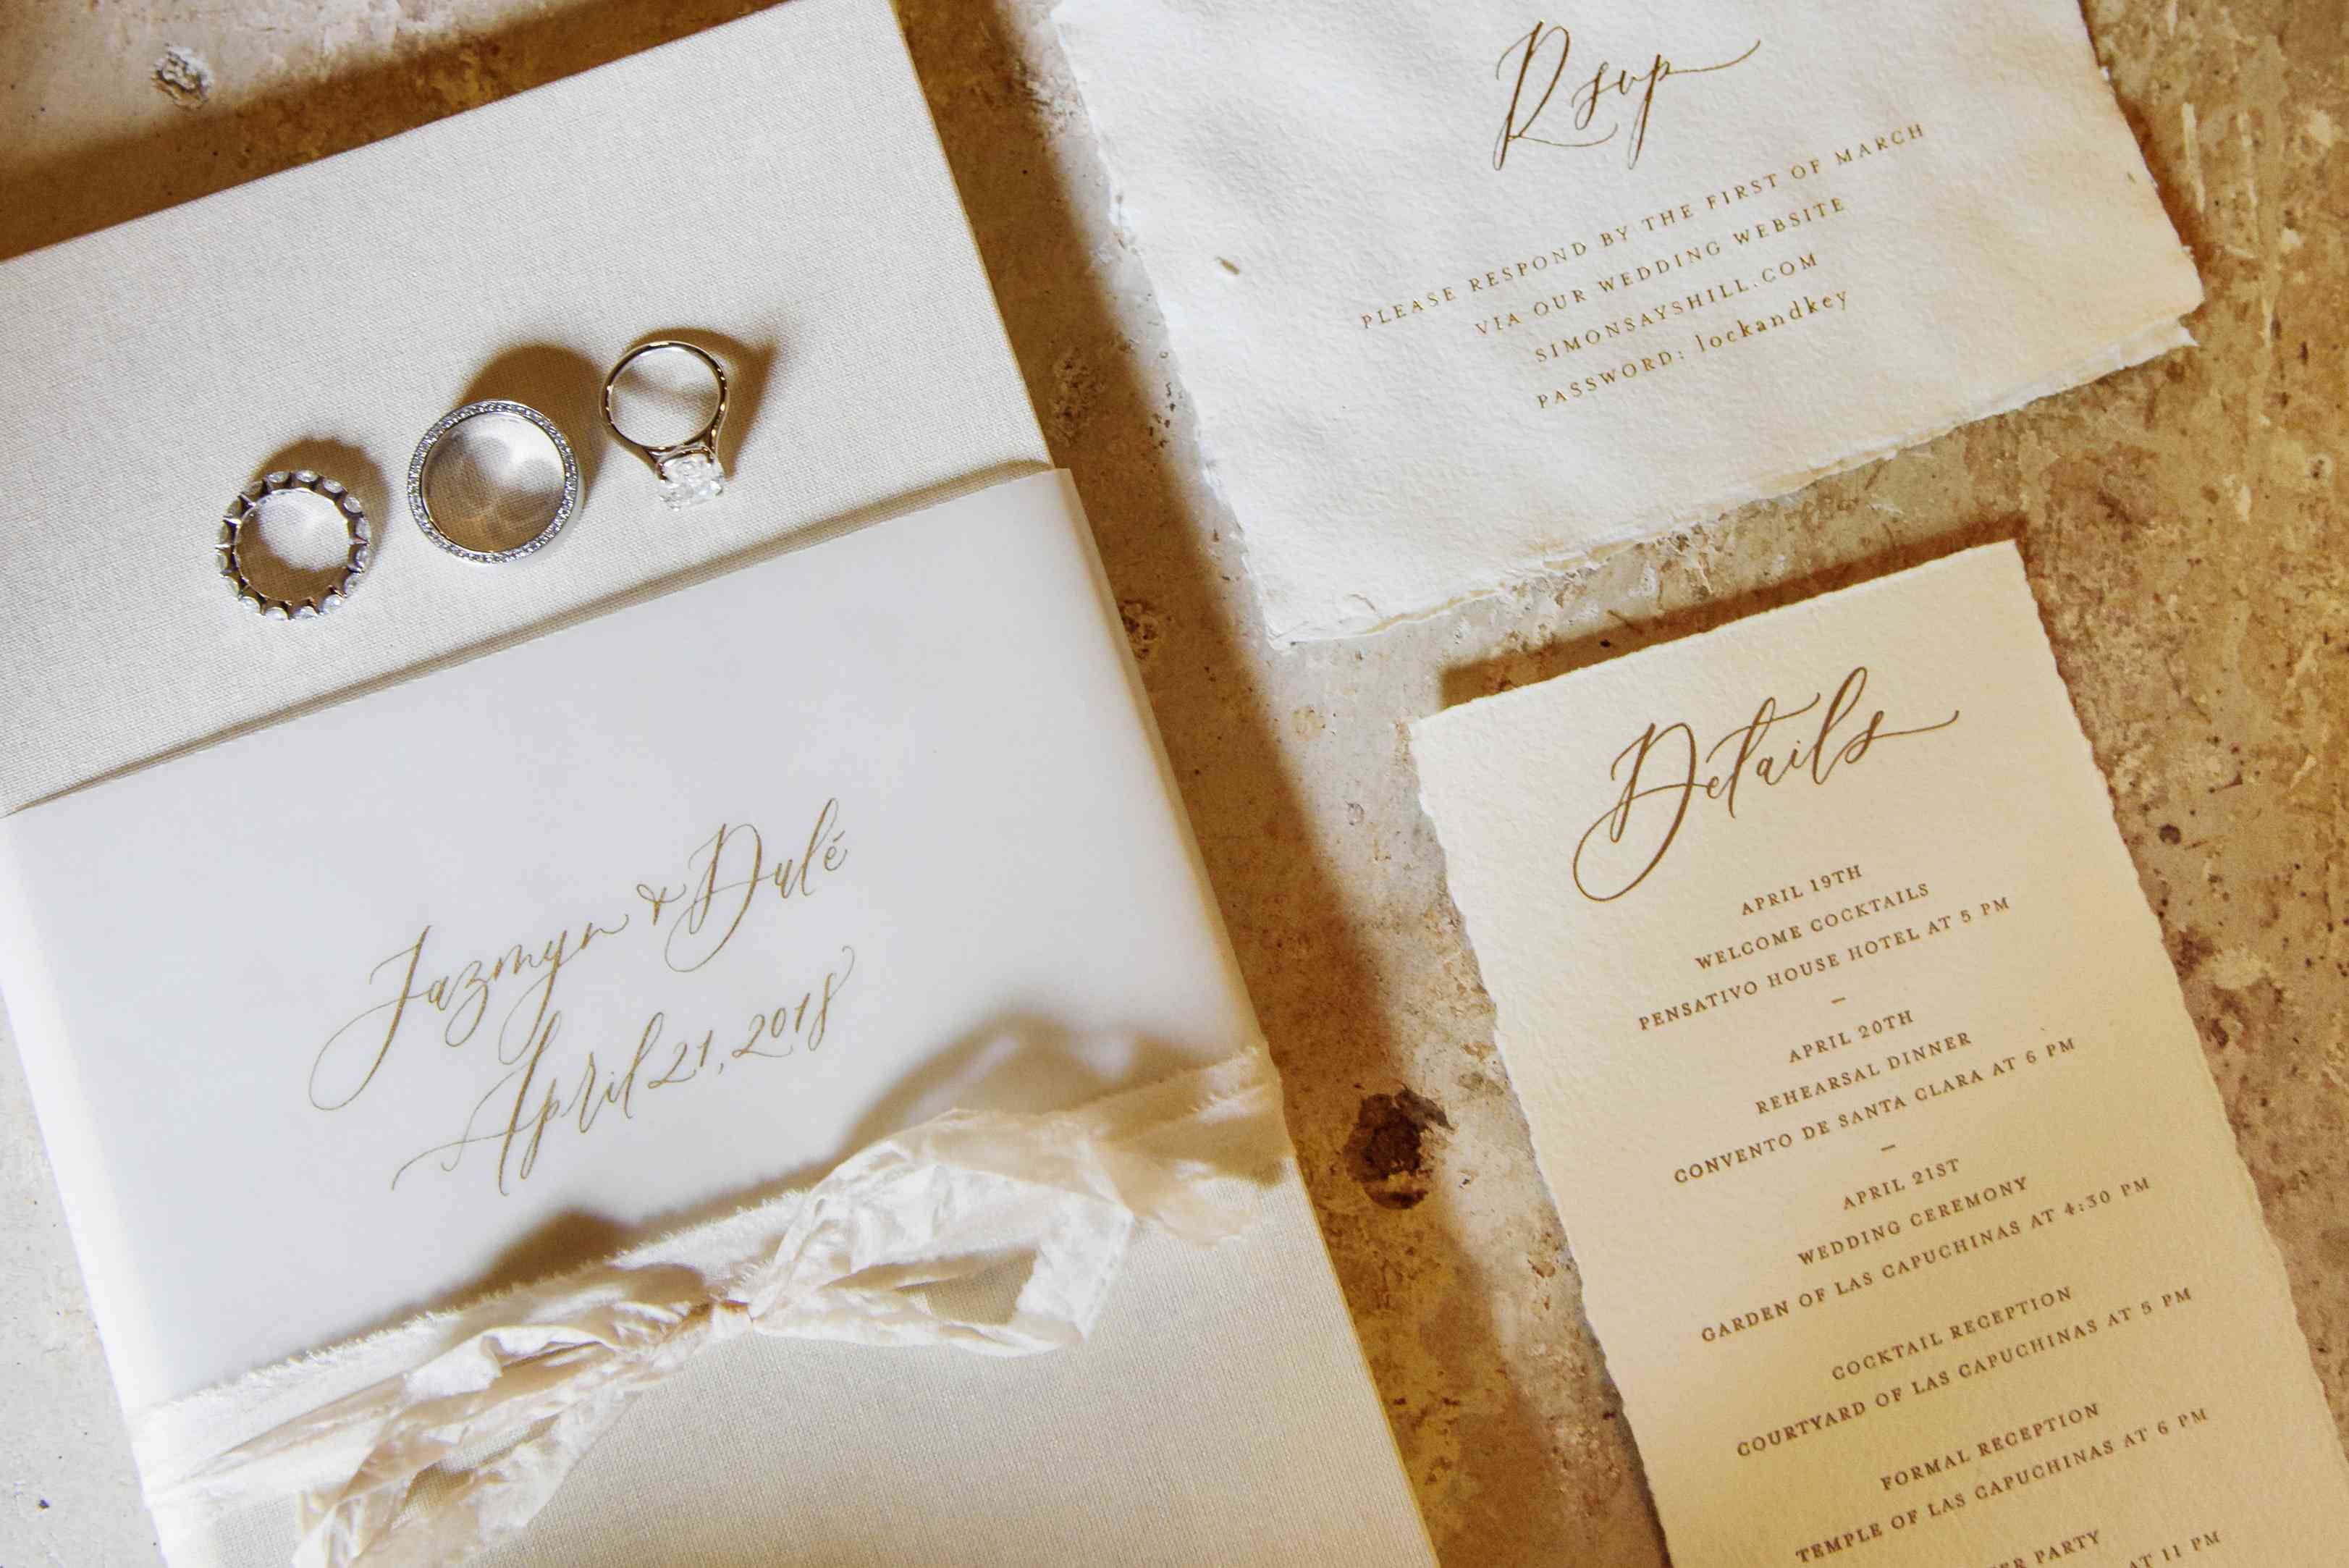 invitation suite and wedding rings